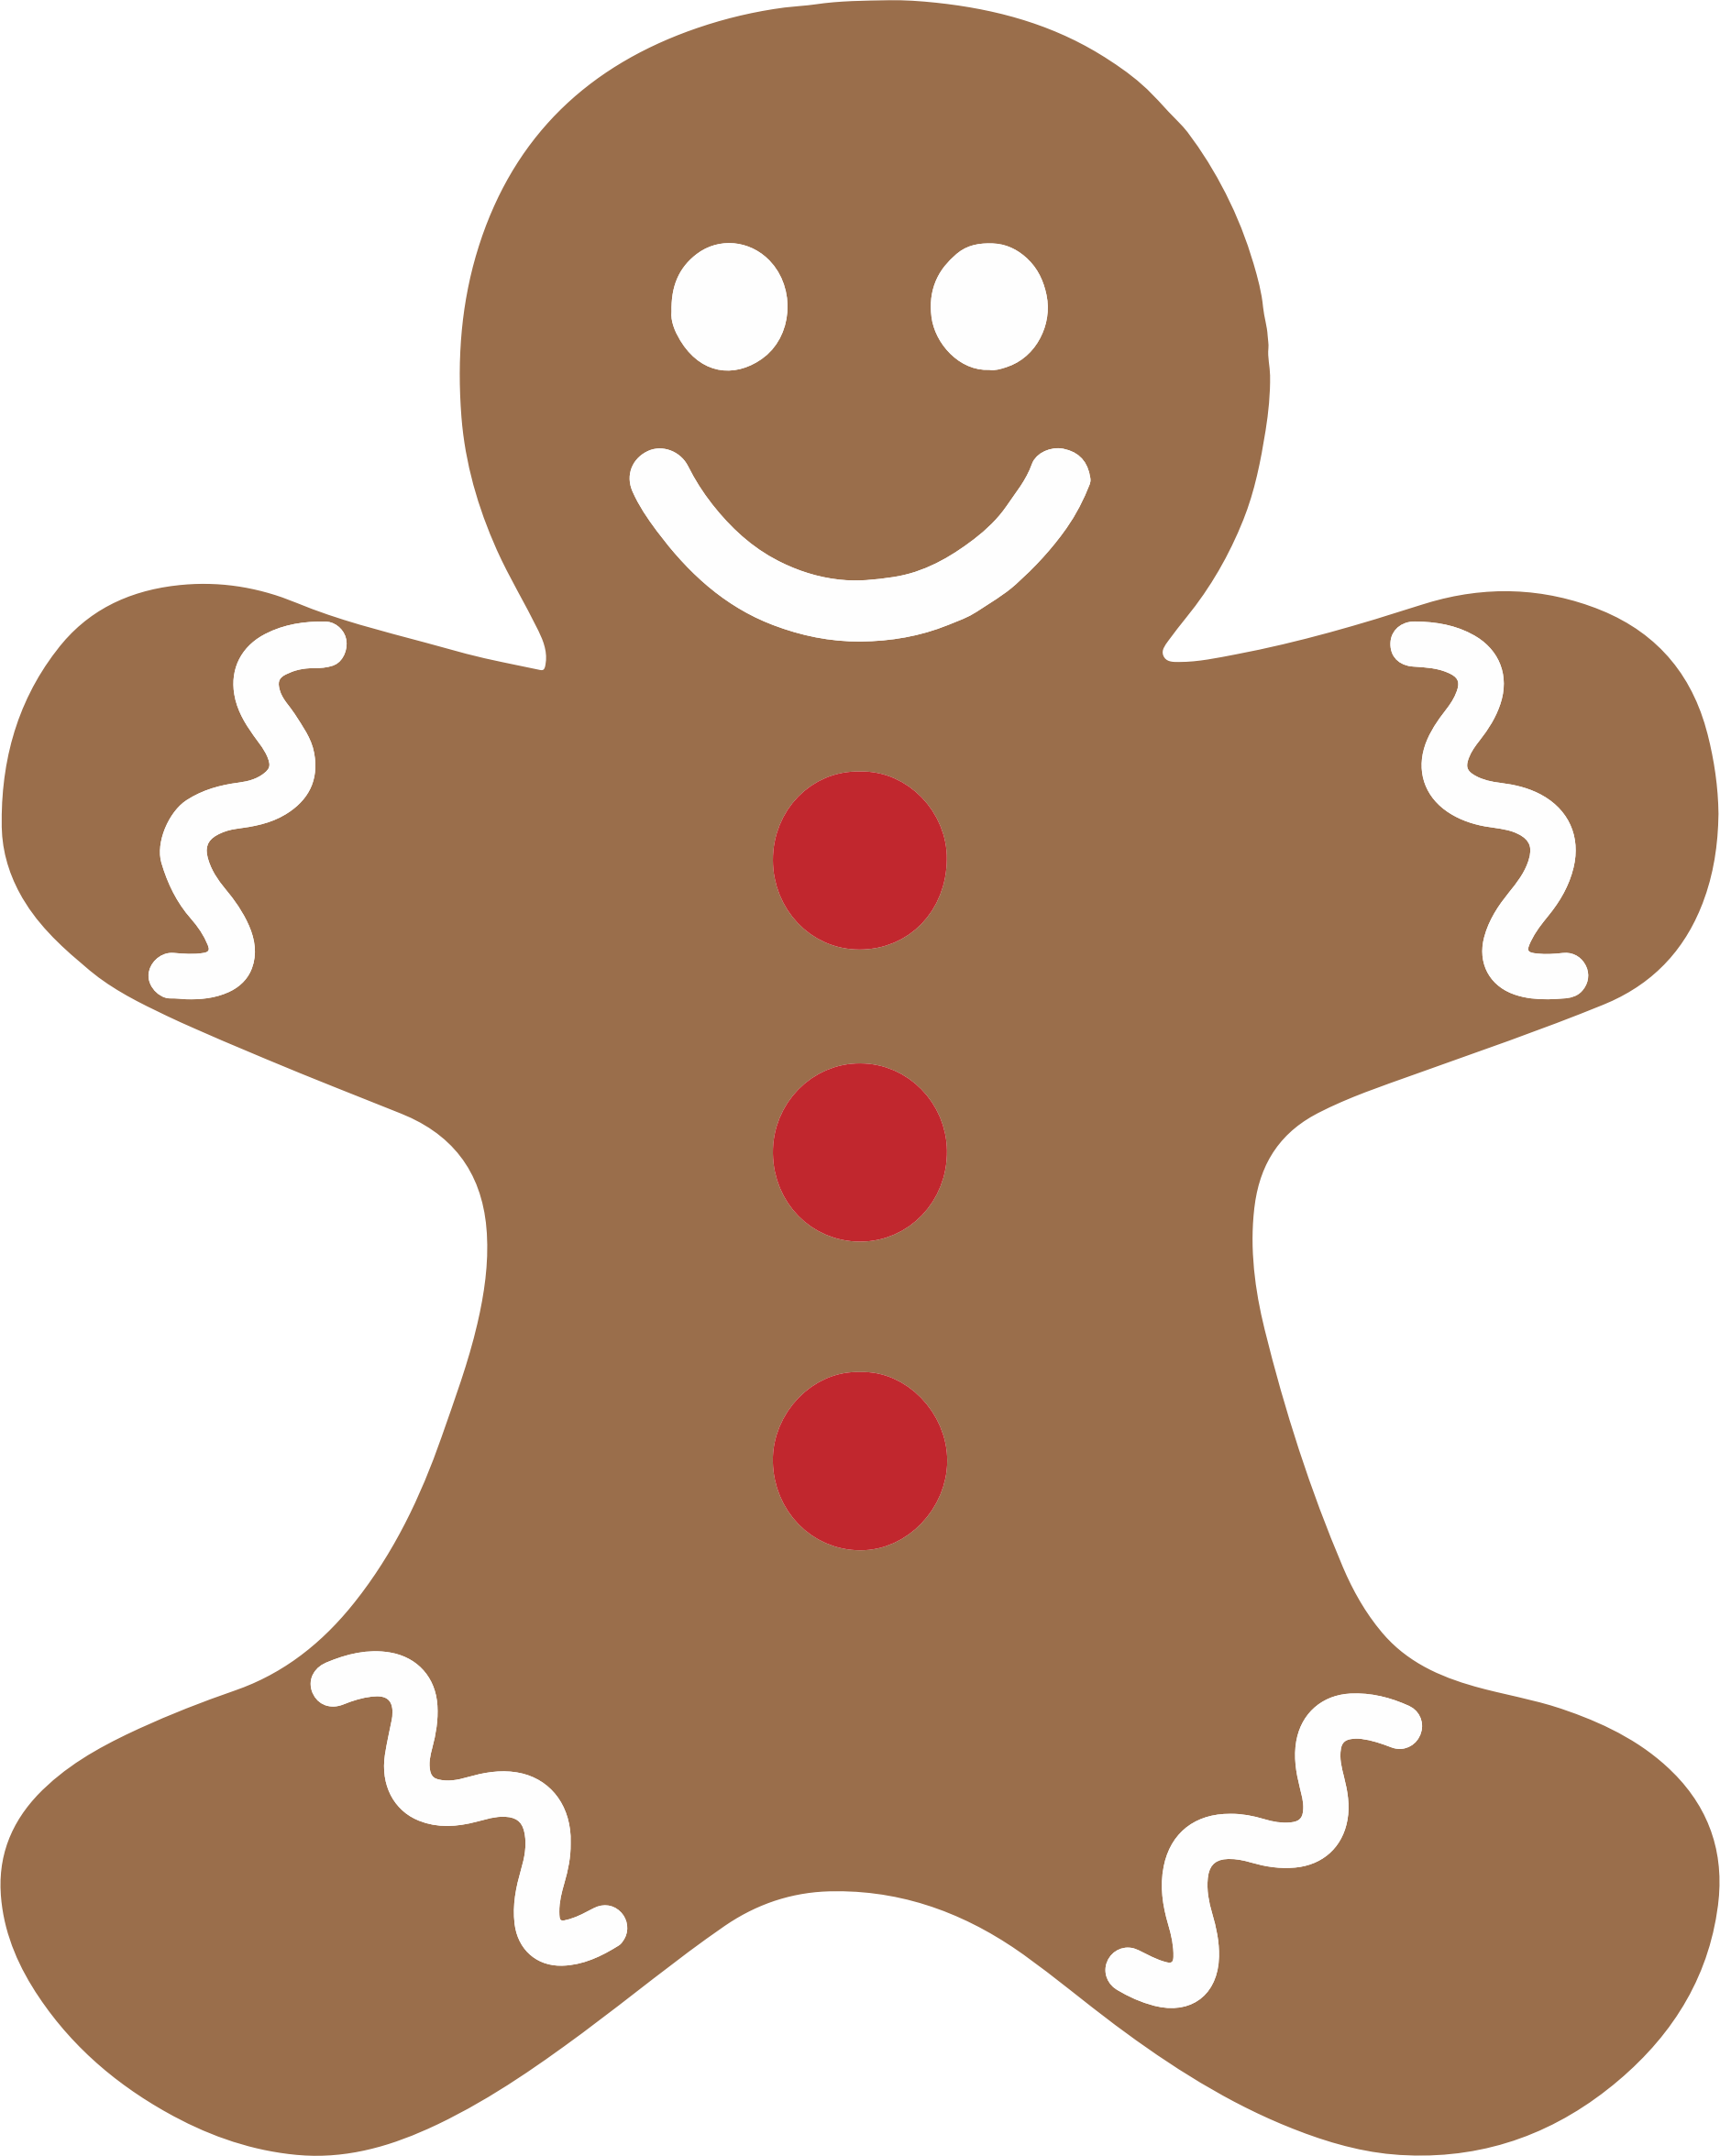 Gingerbread Man by GDJ